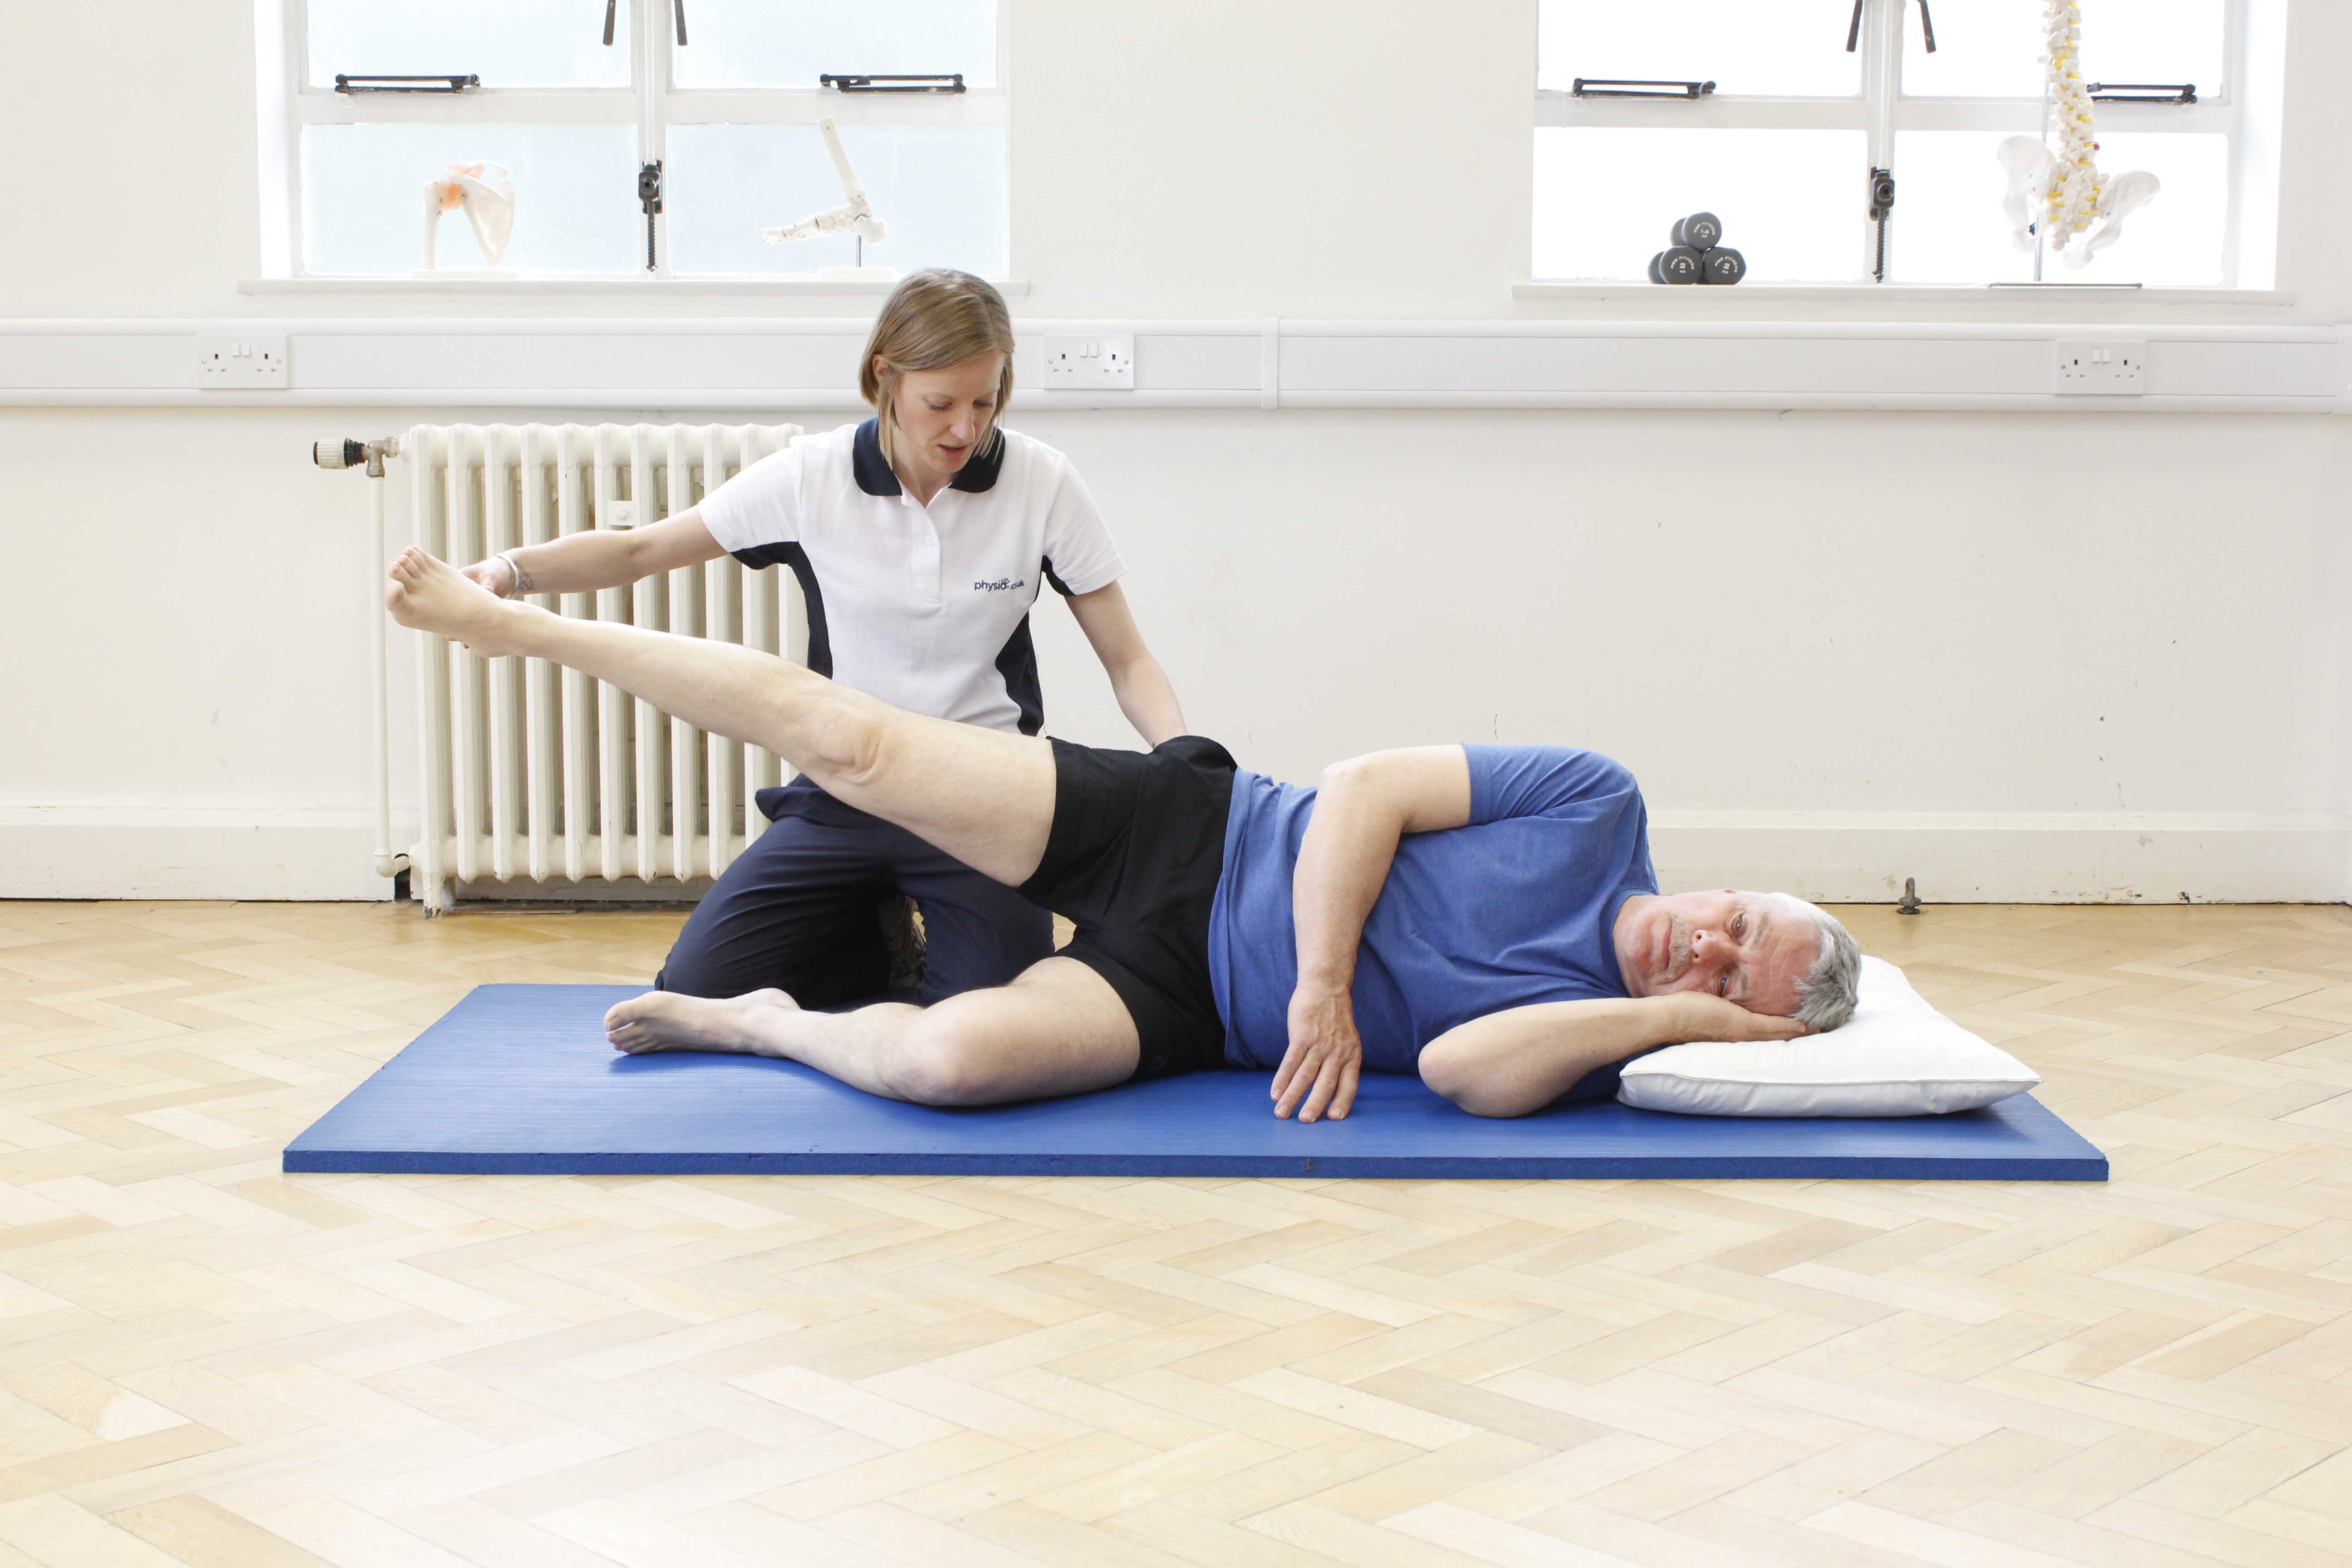 Hip abduction exercises supervised by a neurological physiotherapist